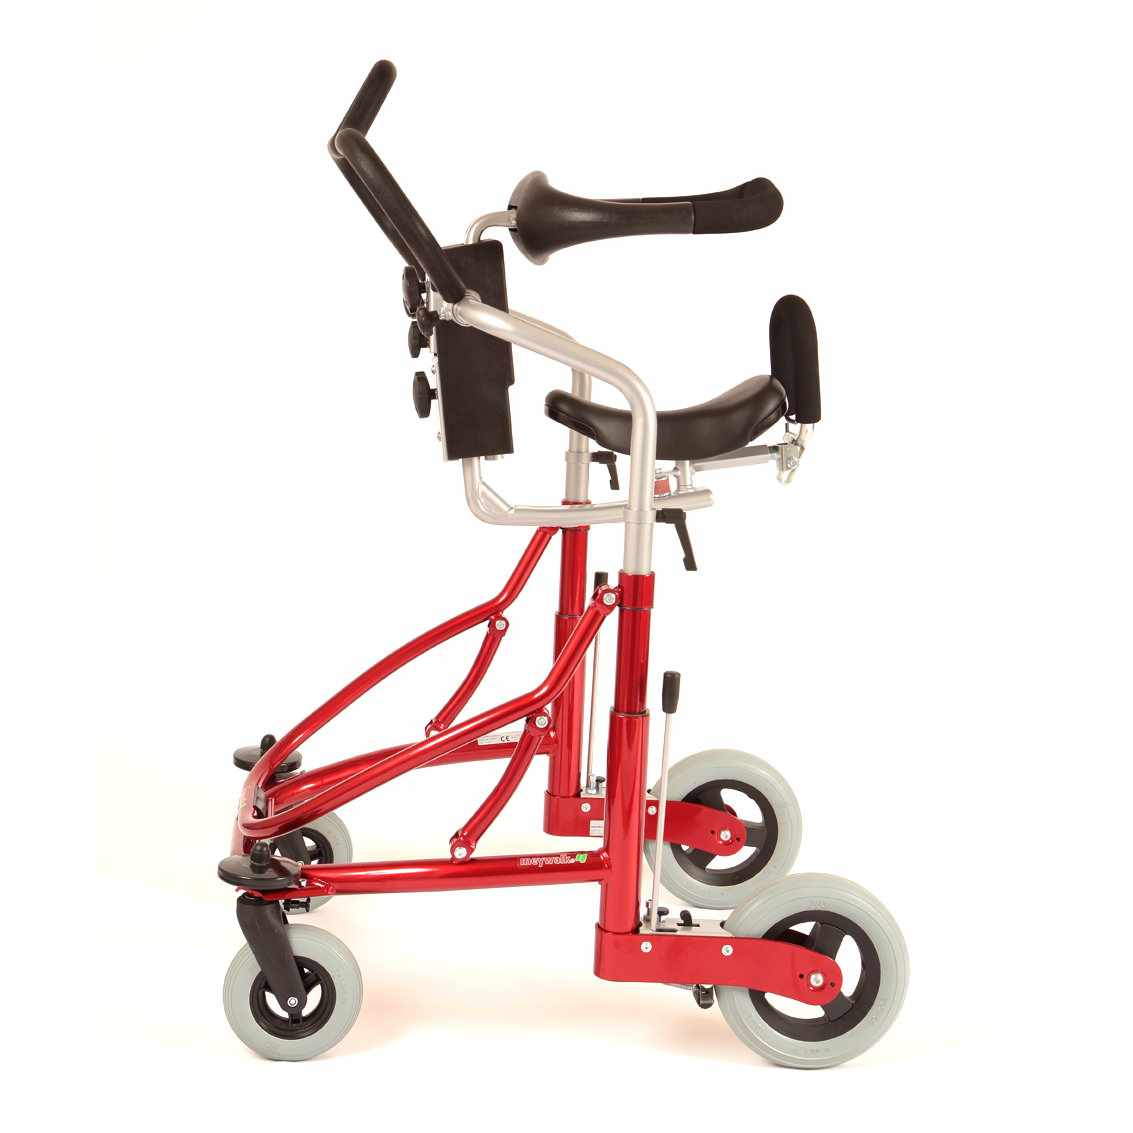 Meywalk MK4 gait trainer